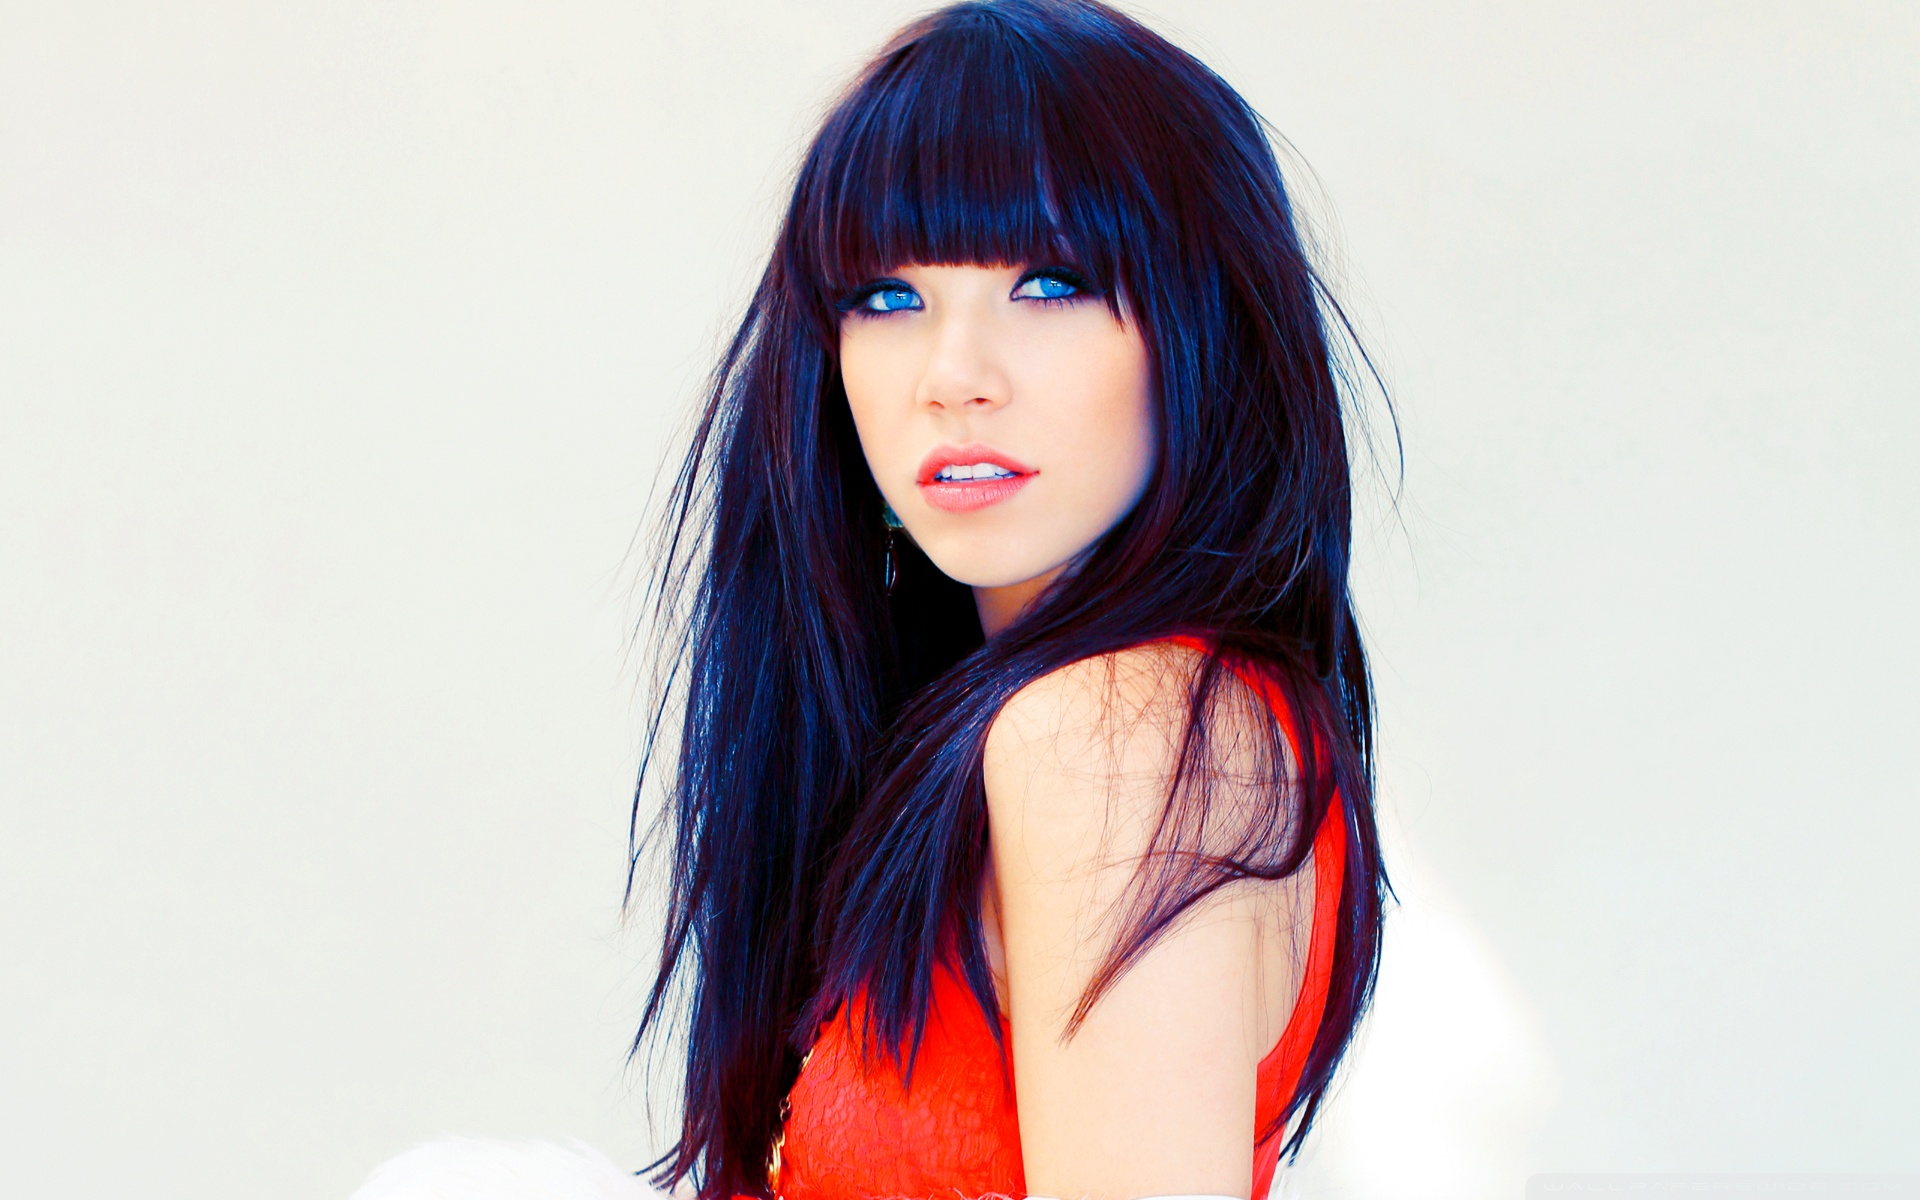 Carly Rae Jepsen Wallpaper HD